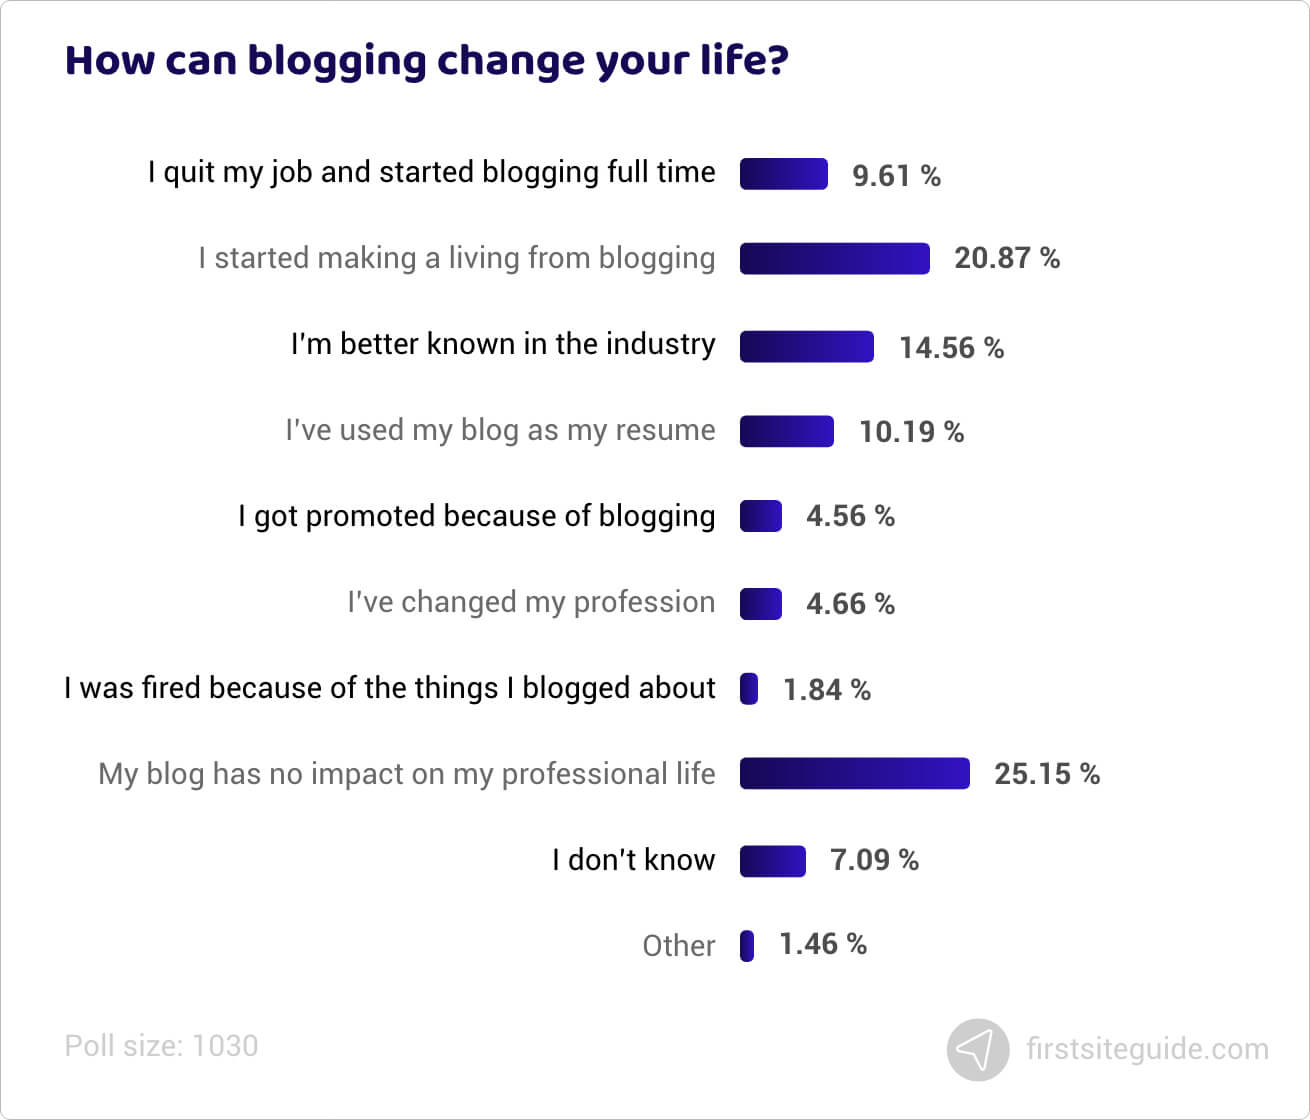 How can blogging change your life